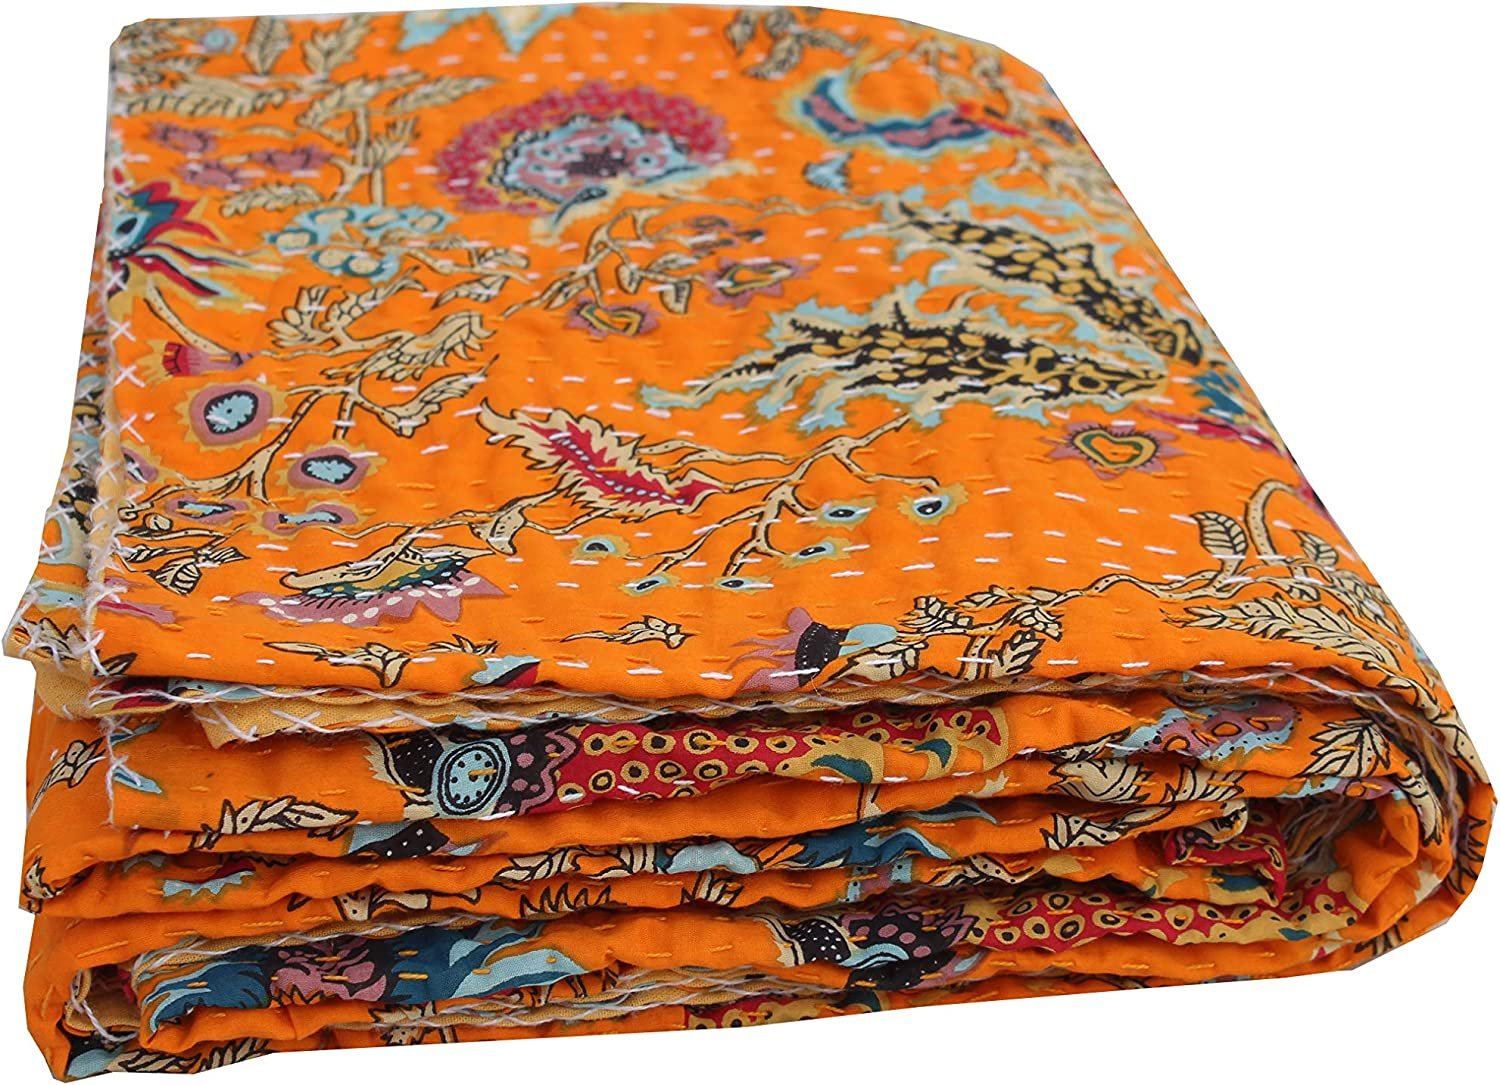 Indian-Shoppers Bohemian Bedding New products world's highest quality popular Décor Size low-pricing Reversibl King Quilt